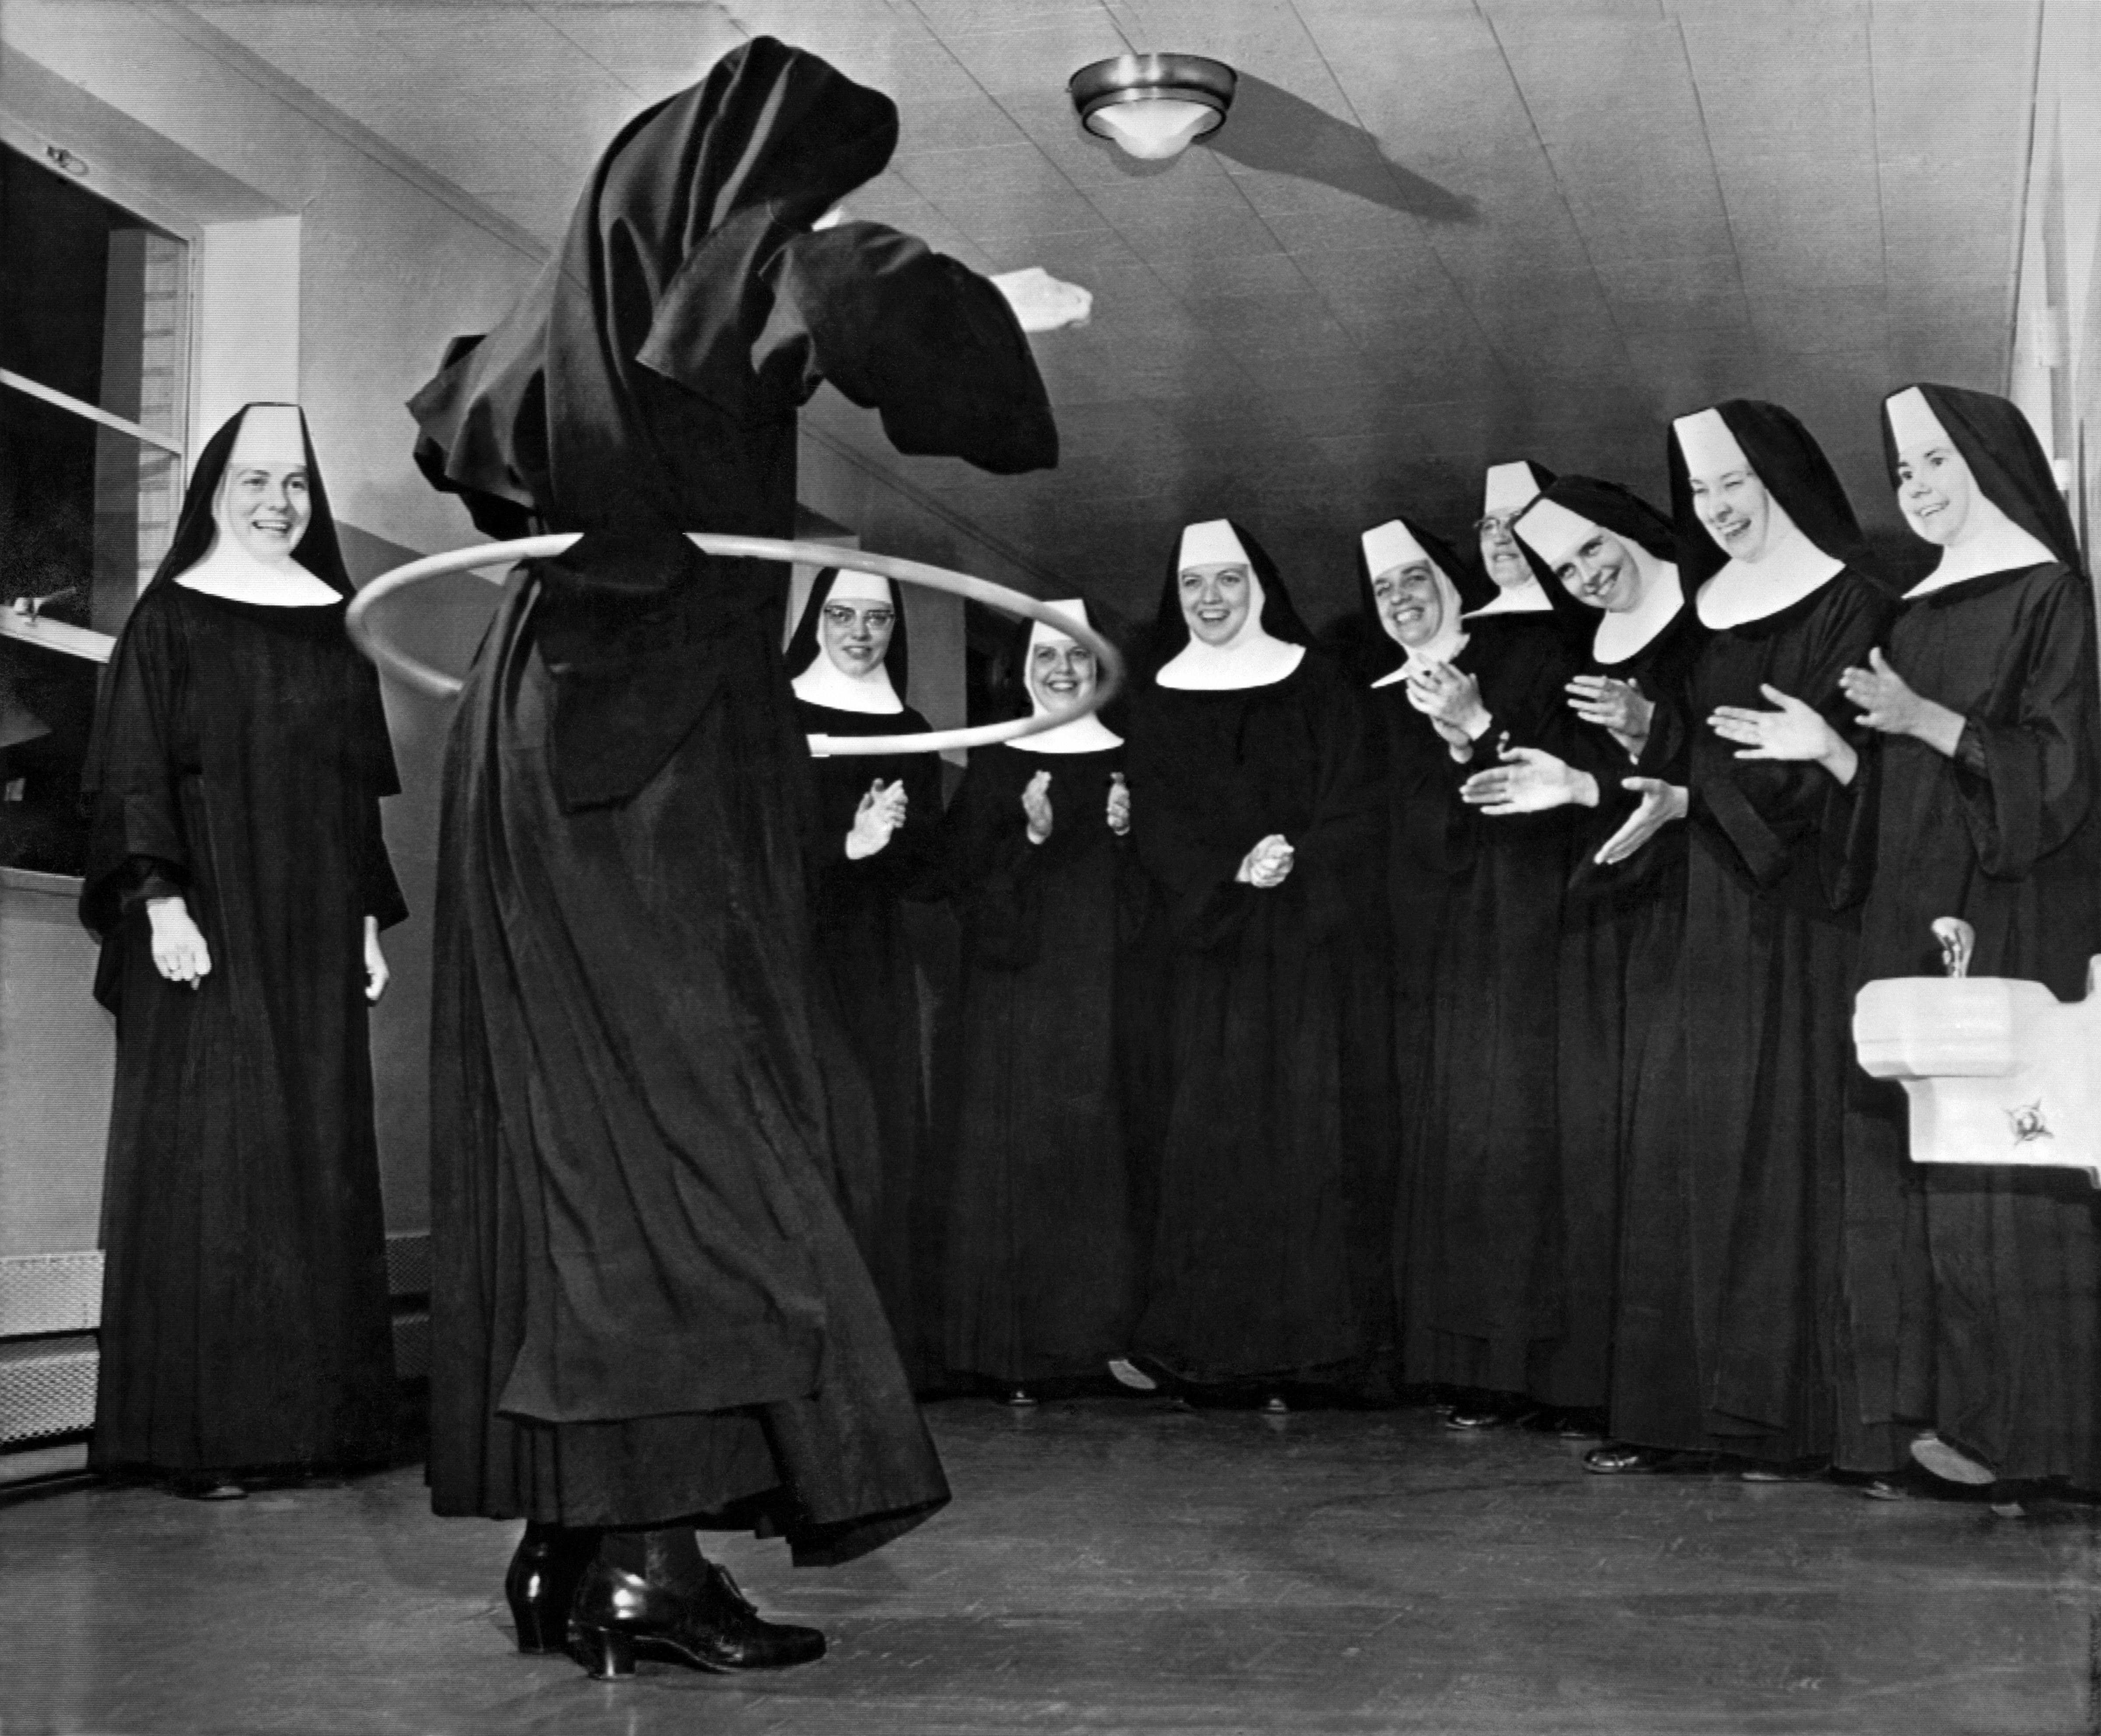 Benedictine Sisters at the Christ King Convent in Oklahoma City try their hand at the hula hoop craze that is sweeping the country, Oklahoma City, Oklahoma, October 18, 1958. (Photo by Underwood Archives/Getty Images)